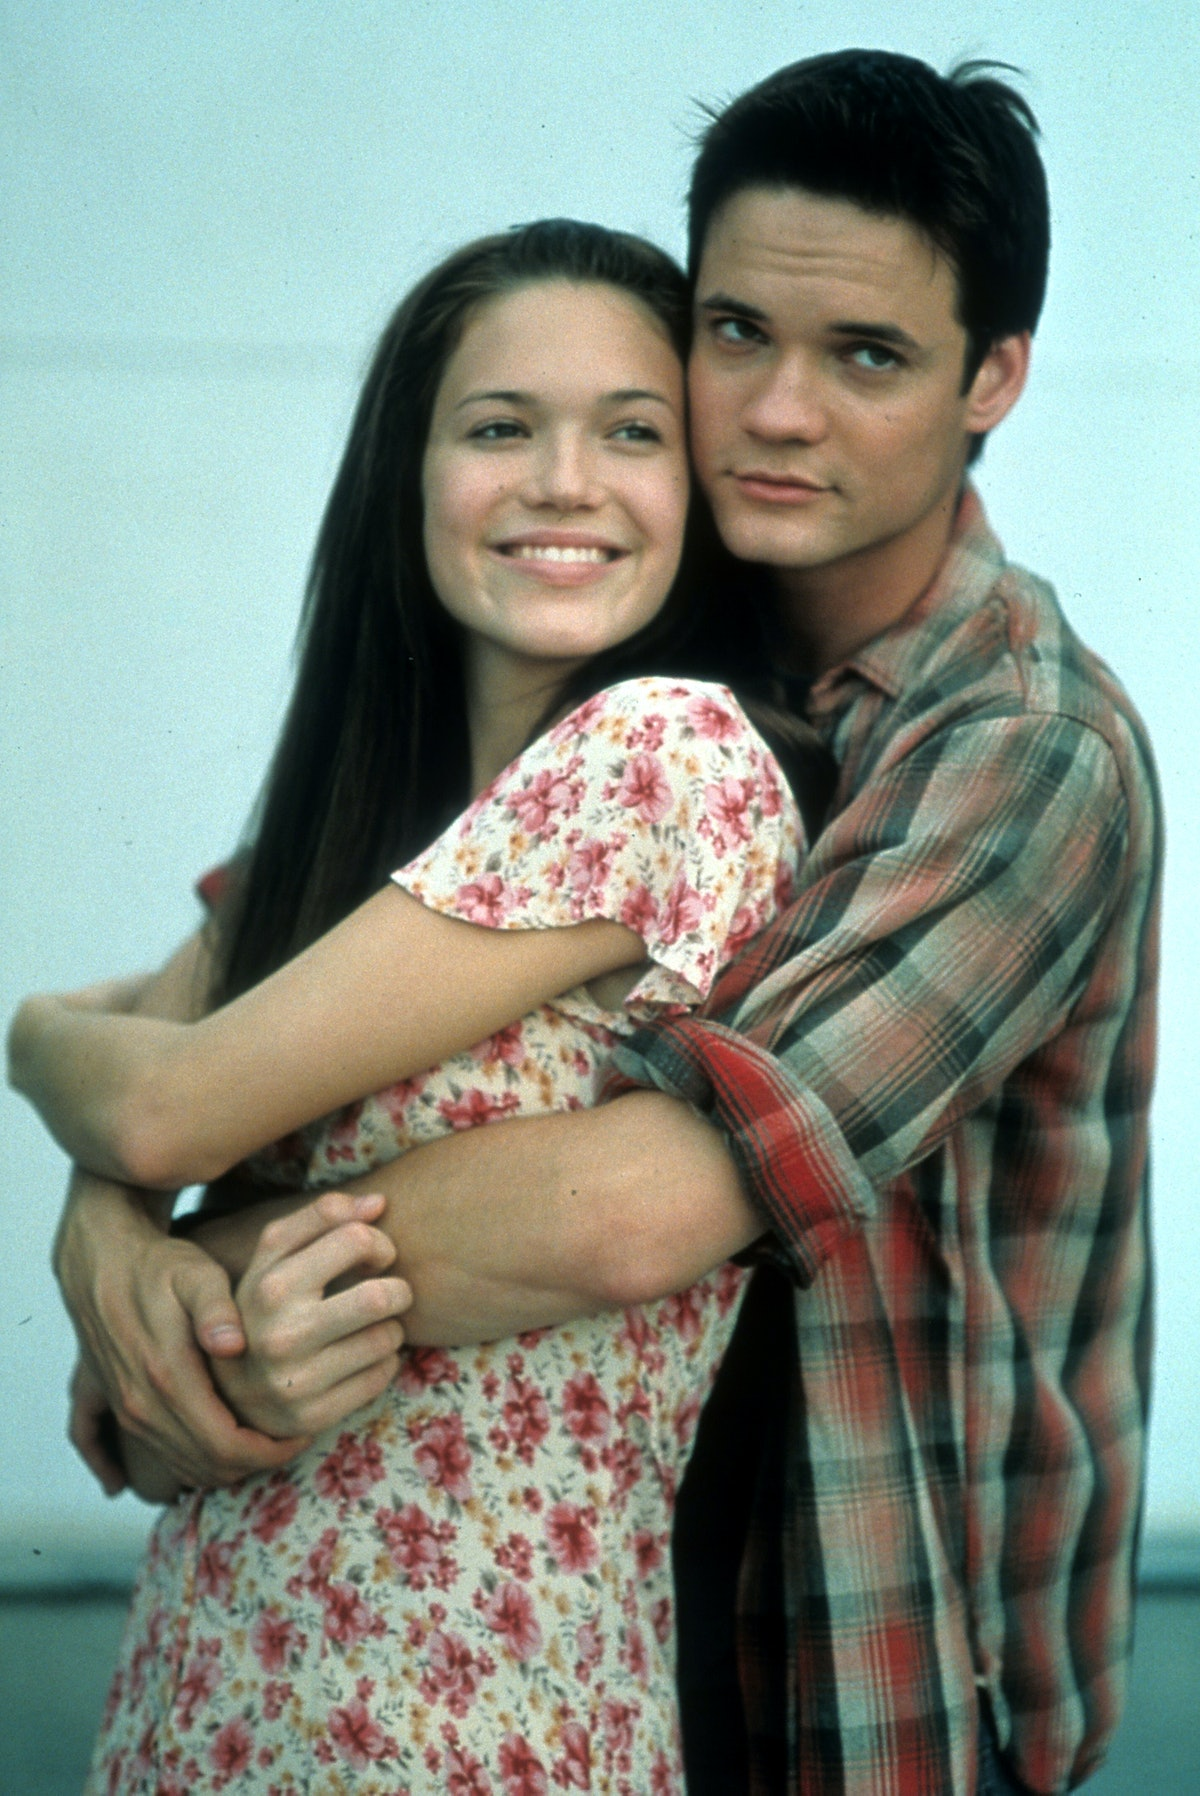 Mandy Moore is held by Shane West in a scene from the film 'A Walk To Remember', 2002. (Photo by Warner Brothers/Getty Images)